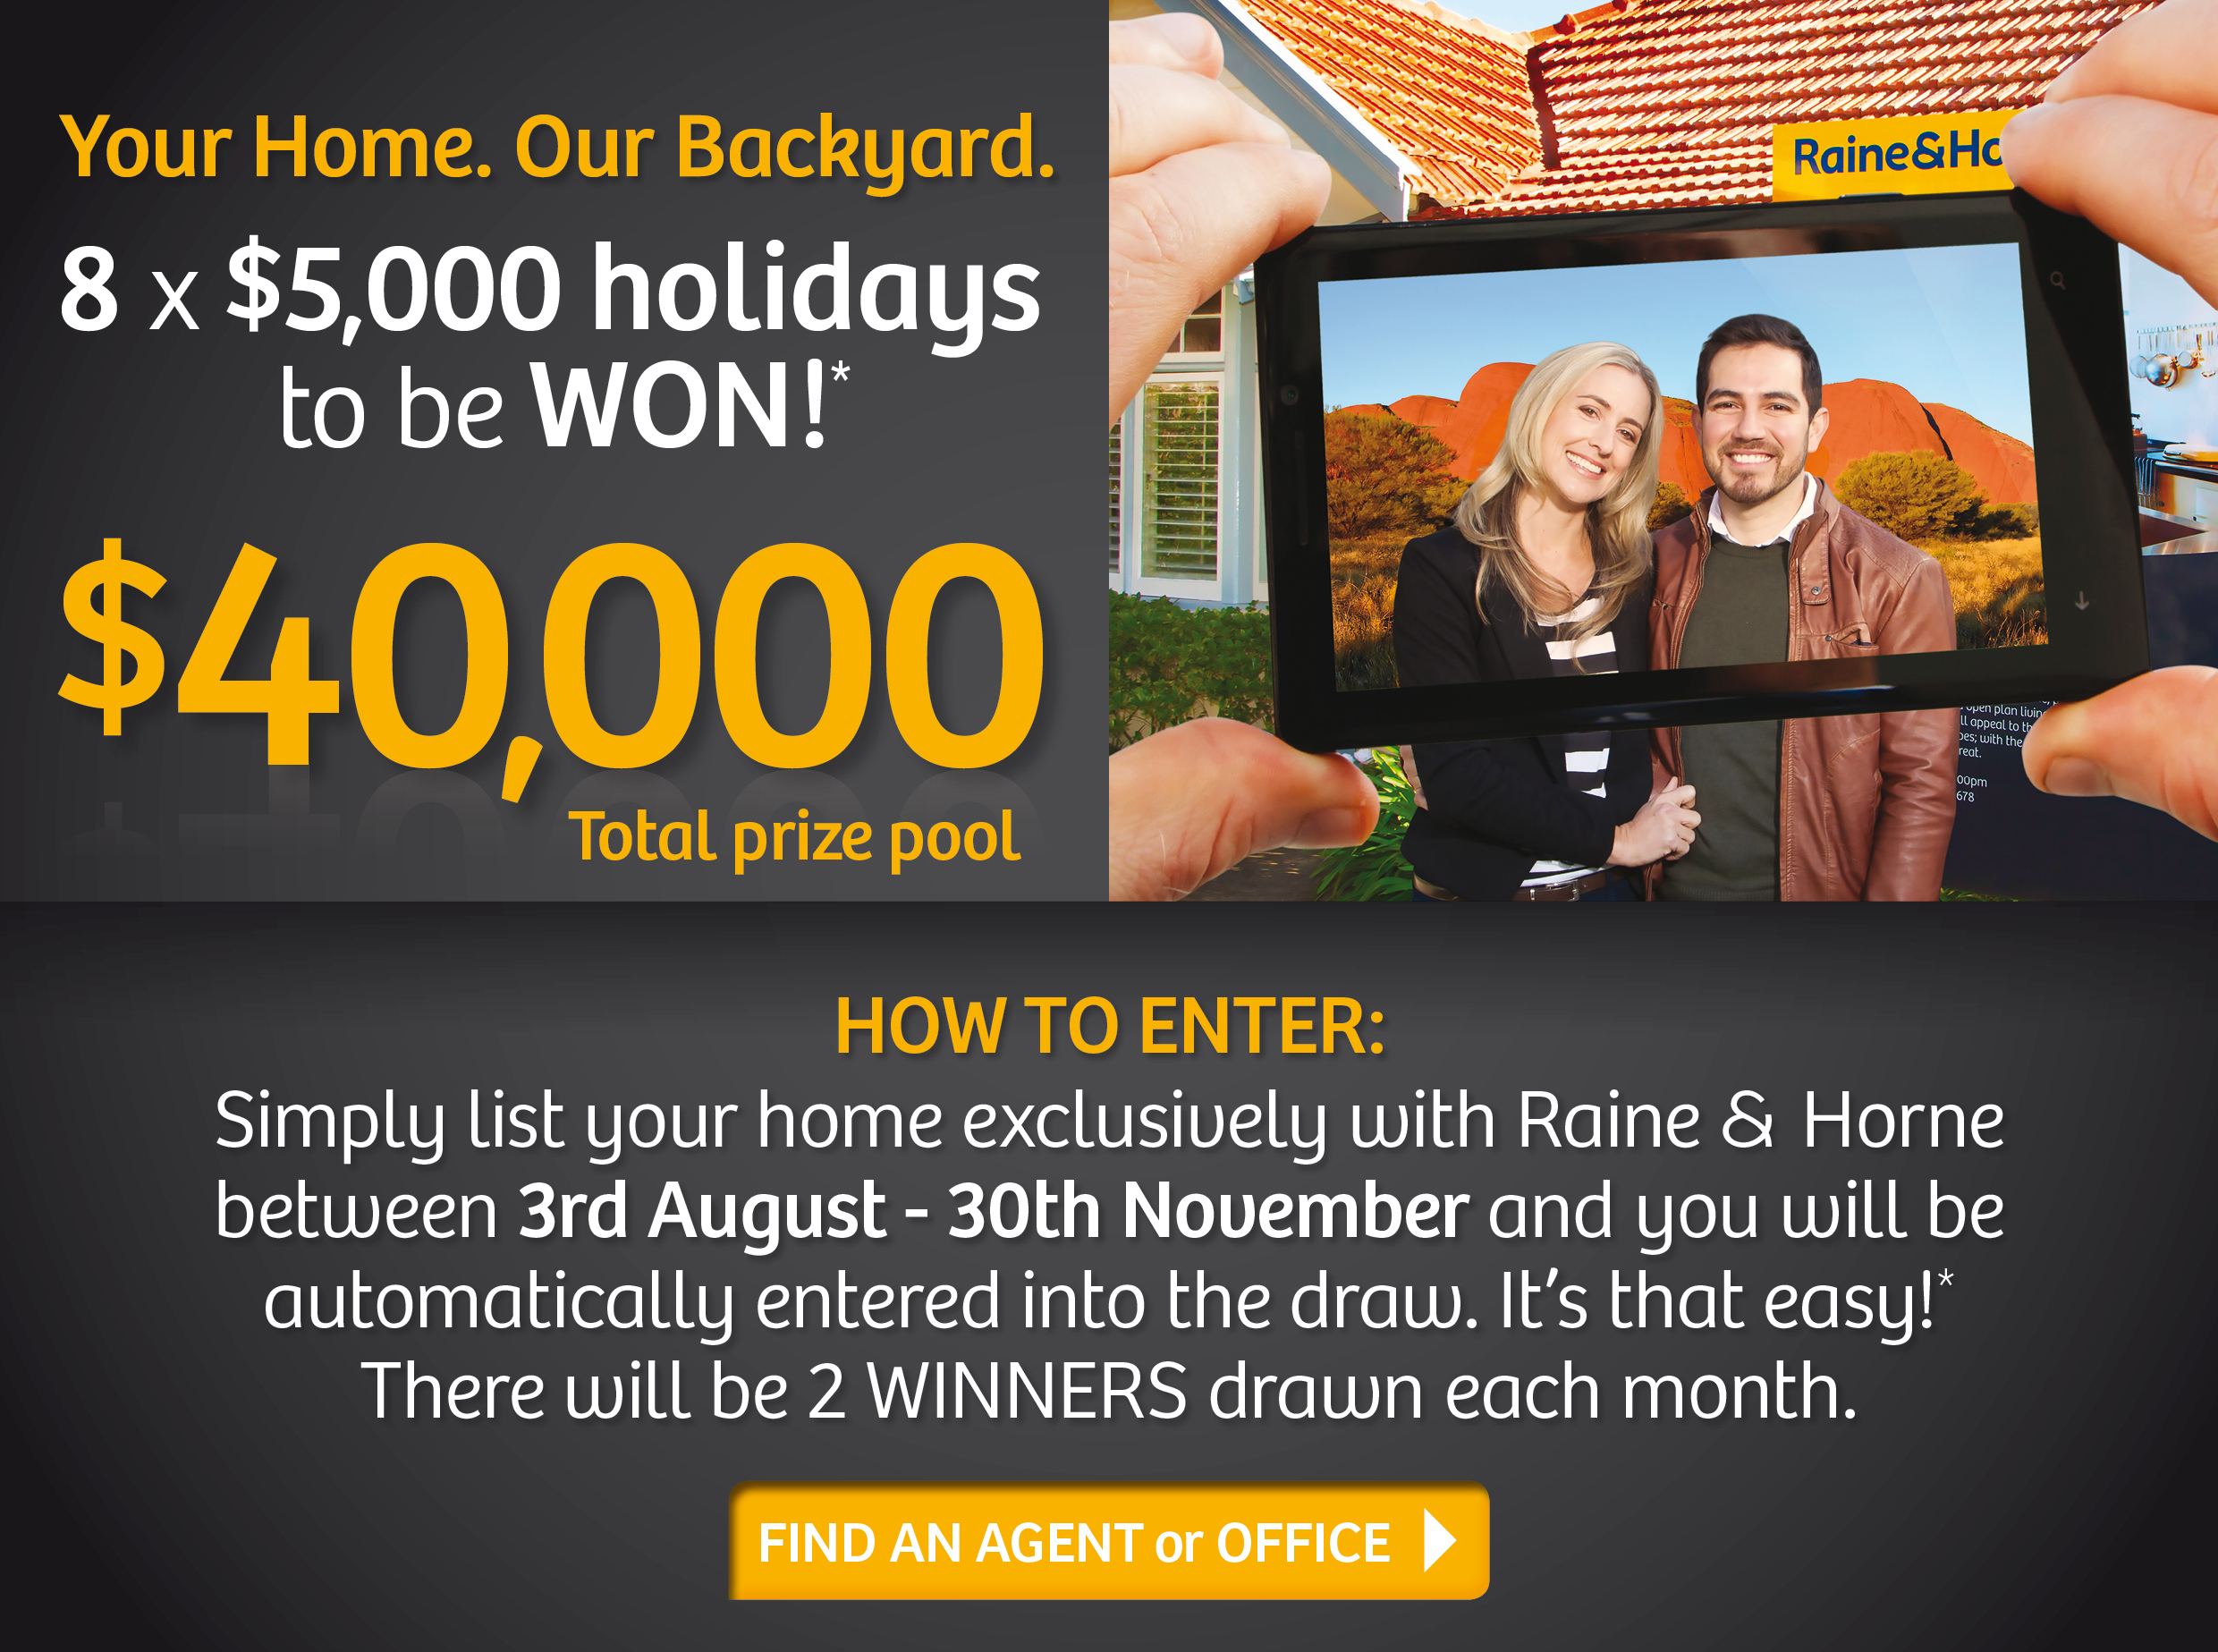 Raine & Horne Backyard Competition